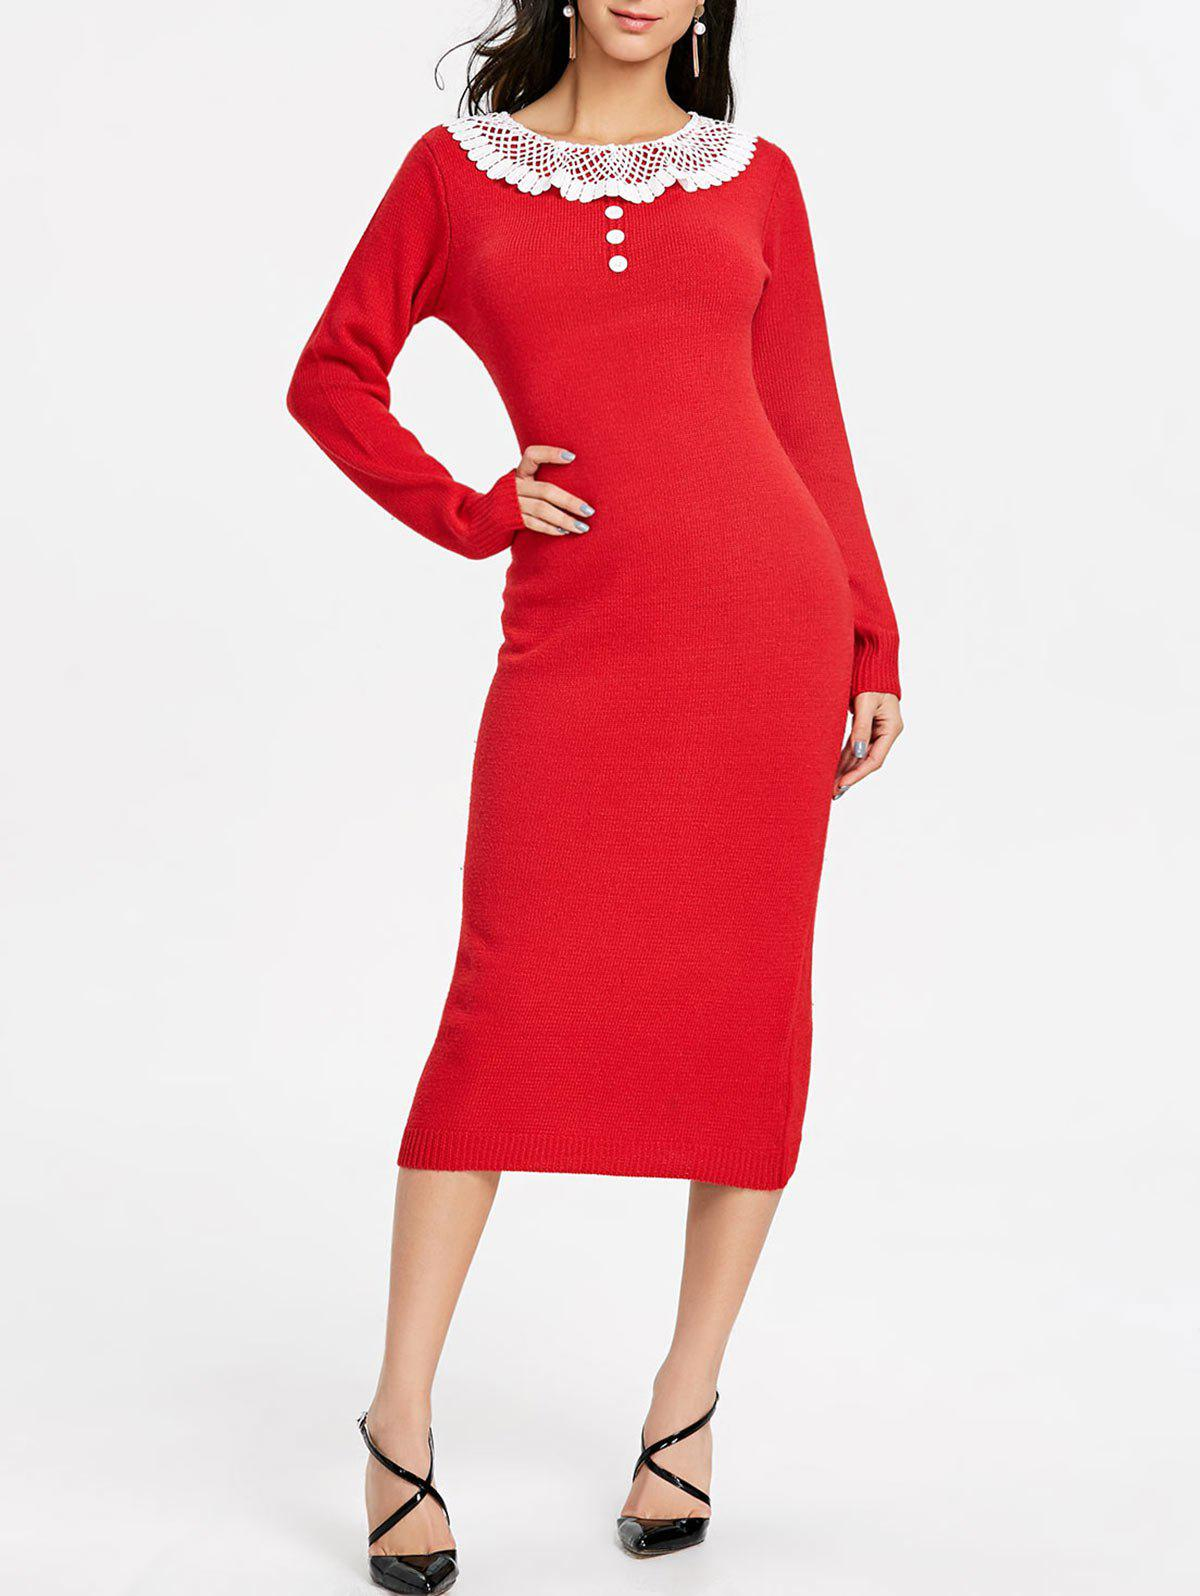 Lace Panel Midi Sweater Dress - RED ONE SIZE